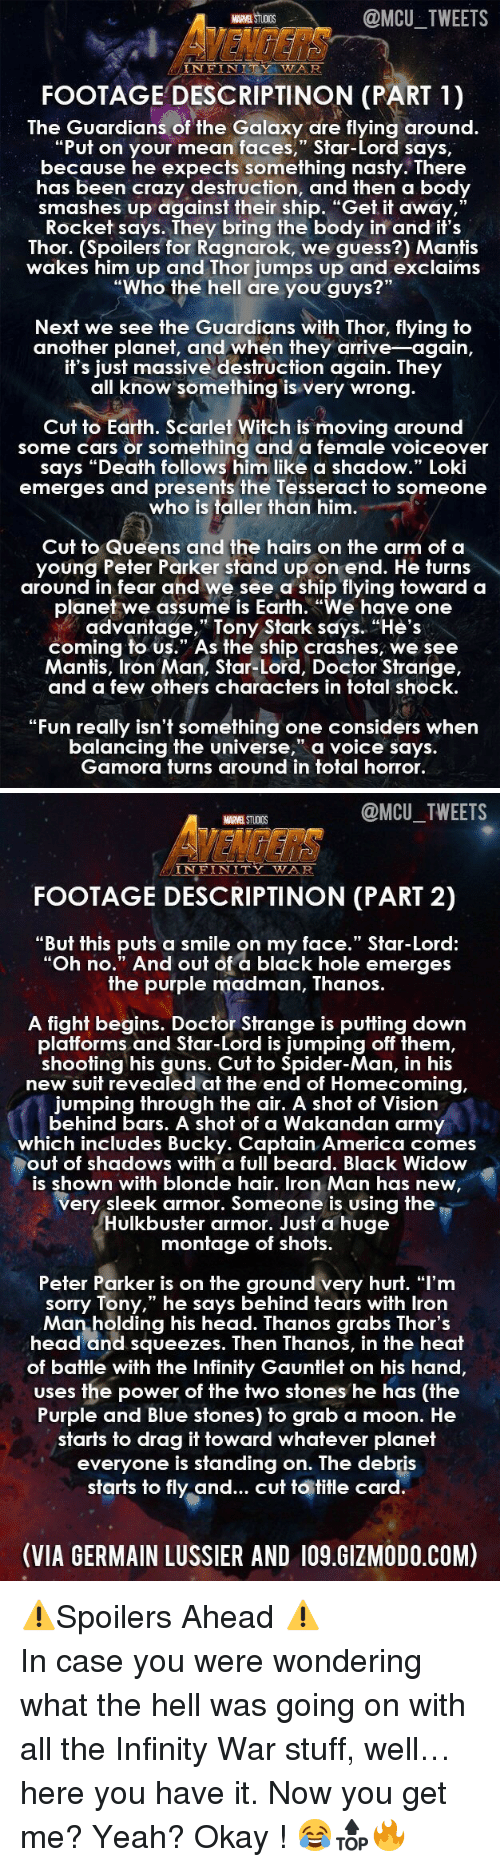 """squeezes: MARVEL STUCIDS  @MCU TWEETS  AVENGERS  FOOTAGE DESCRIPTINON (PART 1)  NFIN  TY WA  The Guardians of the Galaxy are flying around.  """"Put on your mean faces,"""" Star-Lord says,  because he expects something nast  y. There  has been crazy destruction, and then a body  smashes up against their ship. """"Get it away,  Rocket says. They bring the body in and it's  Thor. (Spoilers for Ragnarok, we guess?) Mantis  wakes him up and Thor jumps up and exclaims  """"Wh ?""""  91  o the hell are you guys  Next we see the Guardians with Thor, flying to  another planet, and when they arrive-again,  If s jUsf massive desfruction again. They  all know something is very wrong.  Cut to Earth. Scarlet Witch is moving around  some cars or something and a female voiceover  says """"Death follows him like a shadow."""" Loki  emerges and presents the Tesseracf to someone  who is taller than him  Cut to Queens and the hairs on the arm of a  young Peter Parker stand up on end. He turns  around in fear and we see a ship flying toward a  planet we assume is Earth. """"We have one  advantage,"""" Tony Stark says. """"He's  coming to us."""" As the ship crashes, we see  Mantis, Iron Man, Star-Lord, Doctor Strange,  and a few others characters in total shock  """"Fun really isn't something one considers when  balancing the universe, a voice says.  Gamora furns around in fofal horror.   @MCU_TWEETS  MARVEL STUDIOS  VENDERS '  INFINITY WAR  FOOTAGE DESCRIPTINON (PART 2)  """"But this puts a smile on my face."""" Star-Lord:  """"Oh no."""" And out of a black hole emerges  he purple madman, Thanos.  A fight begins. Doctor Strange is putting down  platforms  and Star-Lord is jumping off them  shooting his guns. Cut to Spider-Man, in his  new suit revealed at the end of Homecoming,  jumping through the air. A shot of Vision  behind bars. A shot of a Wakandan army  which includes Bucky. Captain America comes  out of shadows with a full beard. Black Widow  is shown with blonde hair. Iron Man has new  very sleek armor. Someone is using th"""